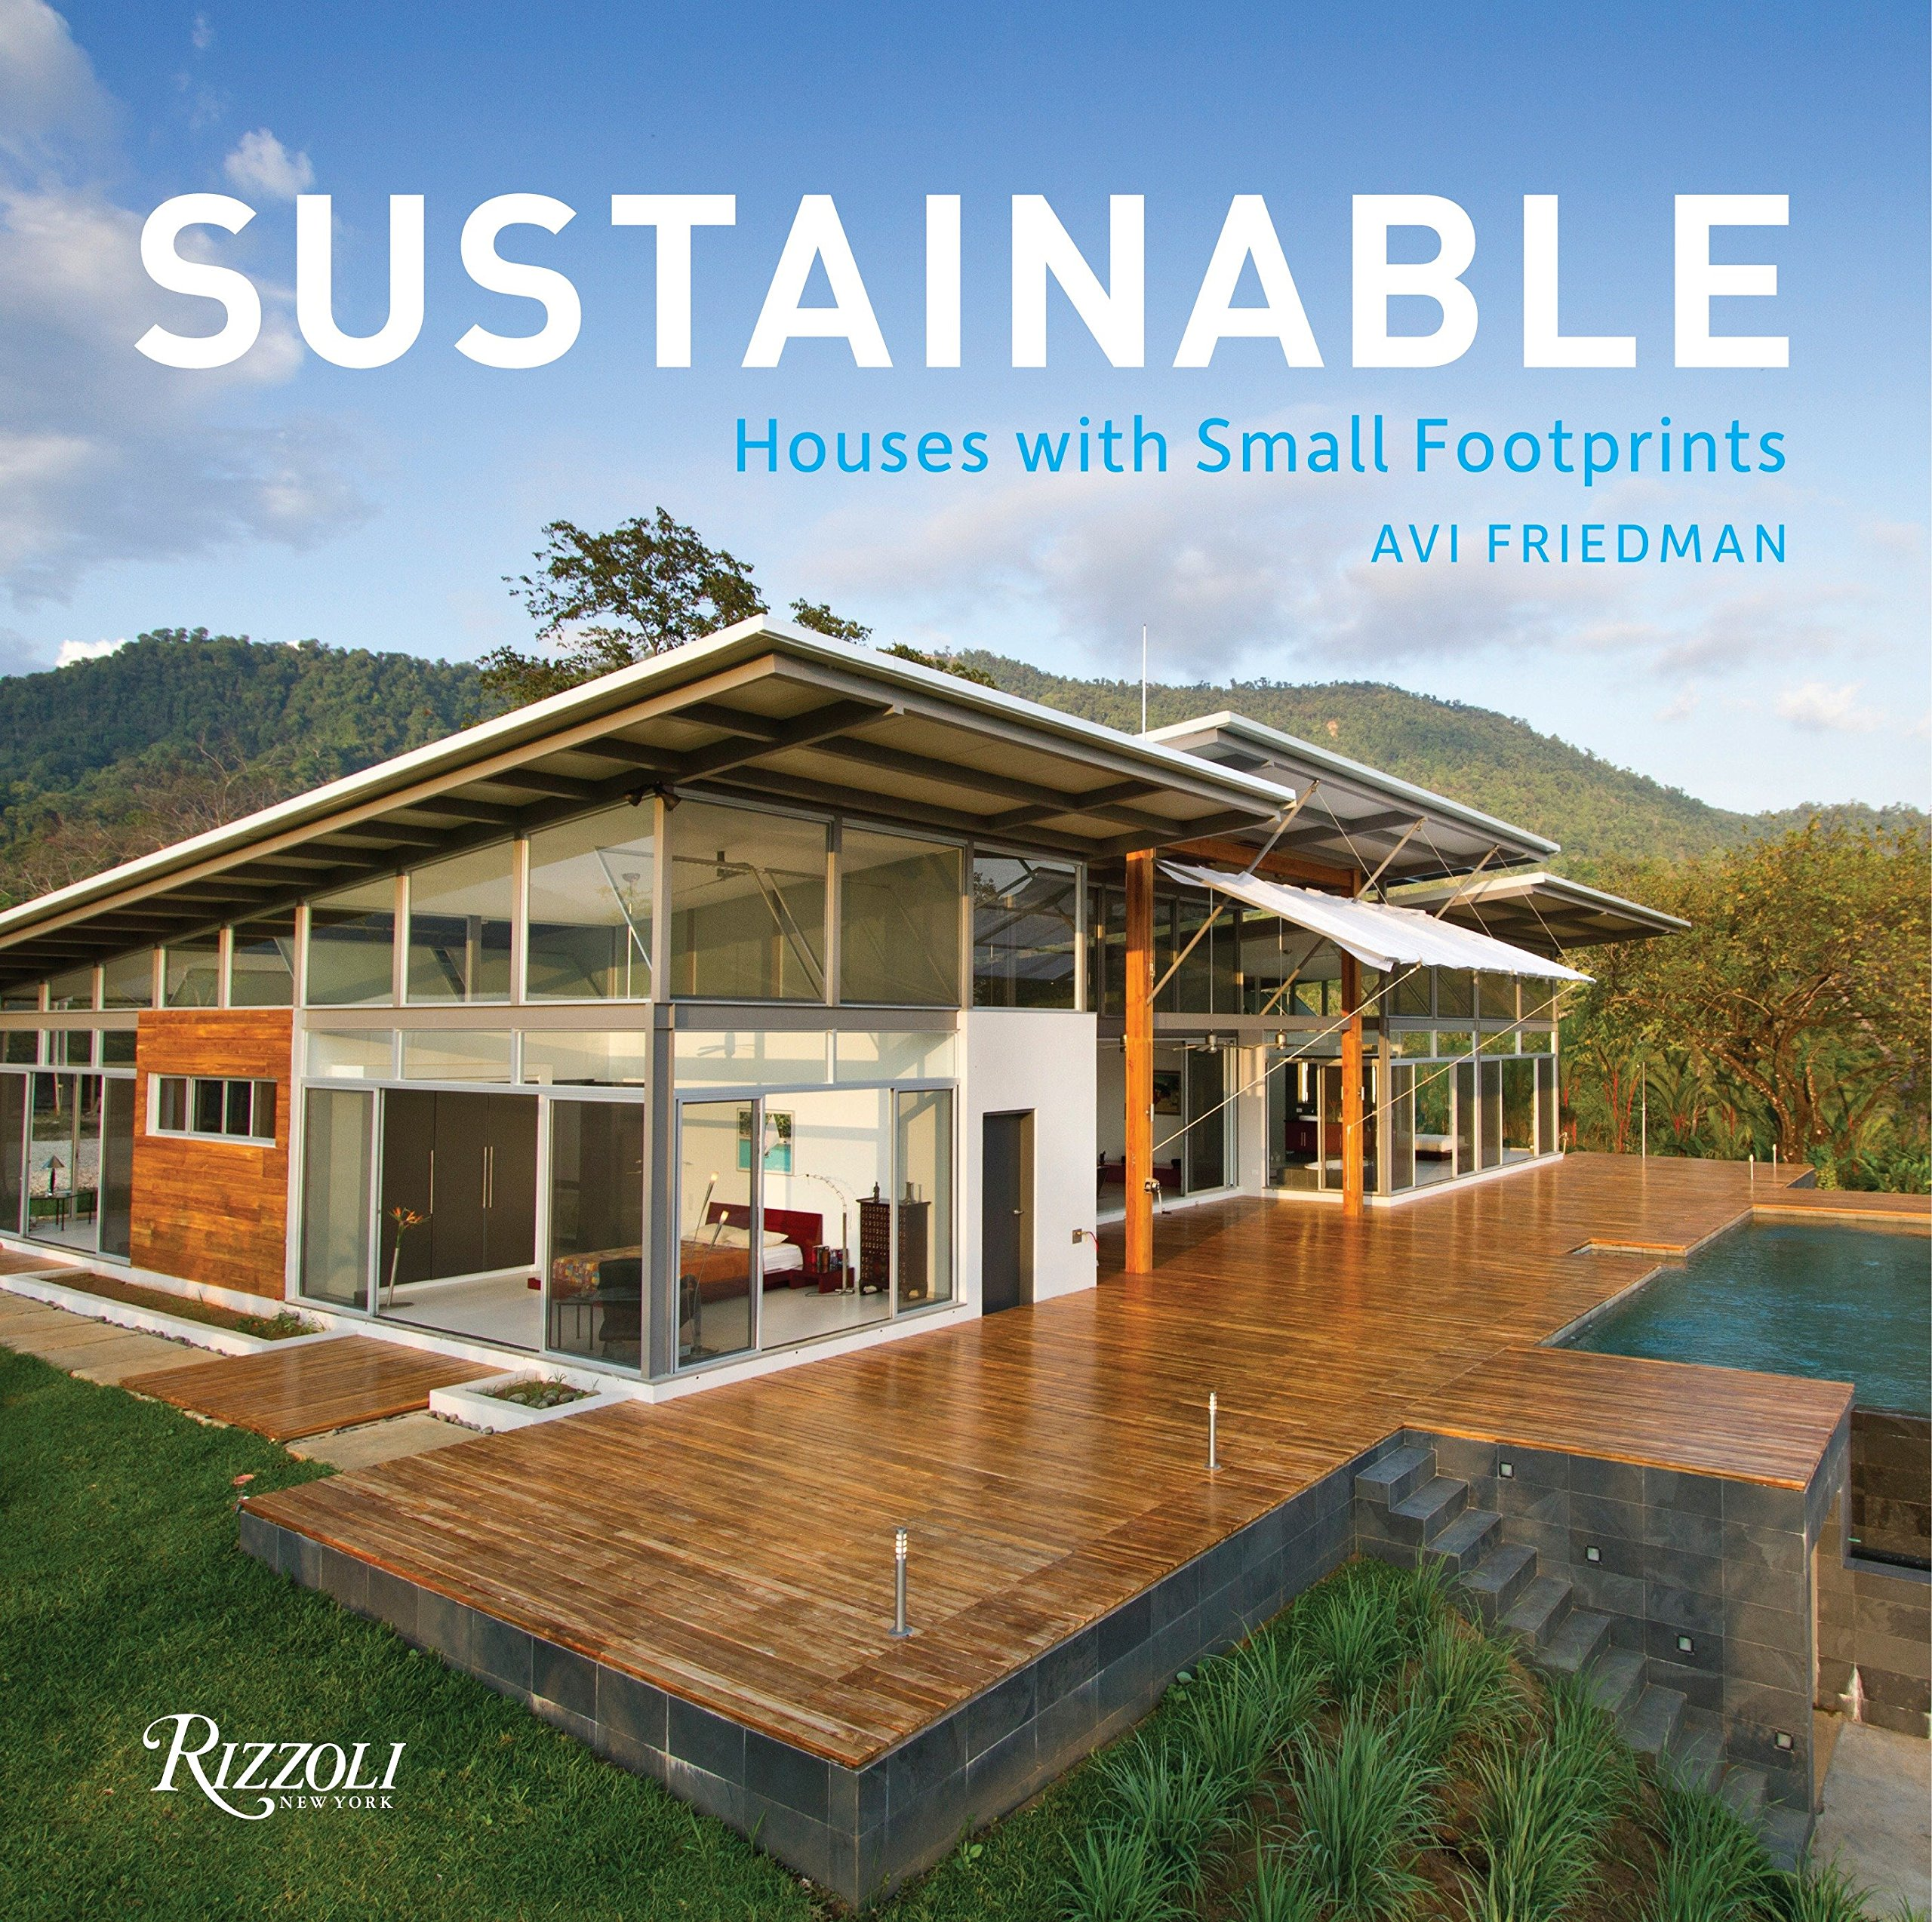 Sustainable: Houses with Small Footprints: Avi Friedman ... on small house plans under 2000 sq ft, small house society, sustainable home design, small house movement, beautiful small kitchen design, small house life, flood house design, beautiful furniture design,